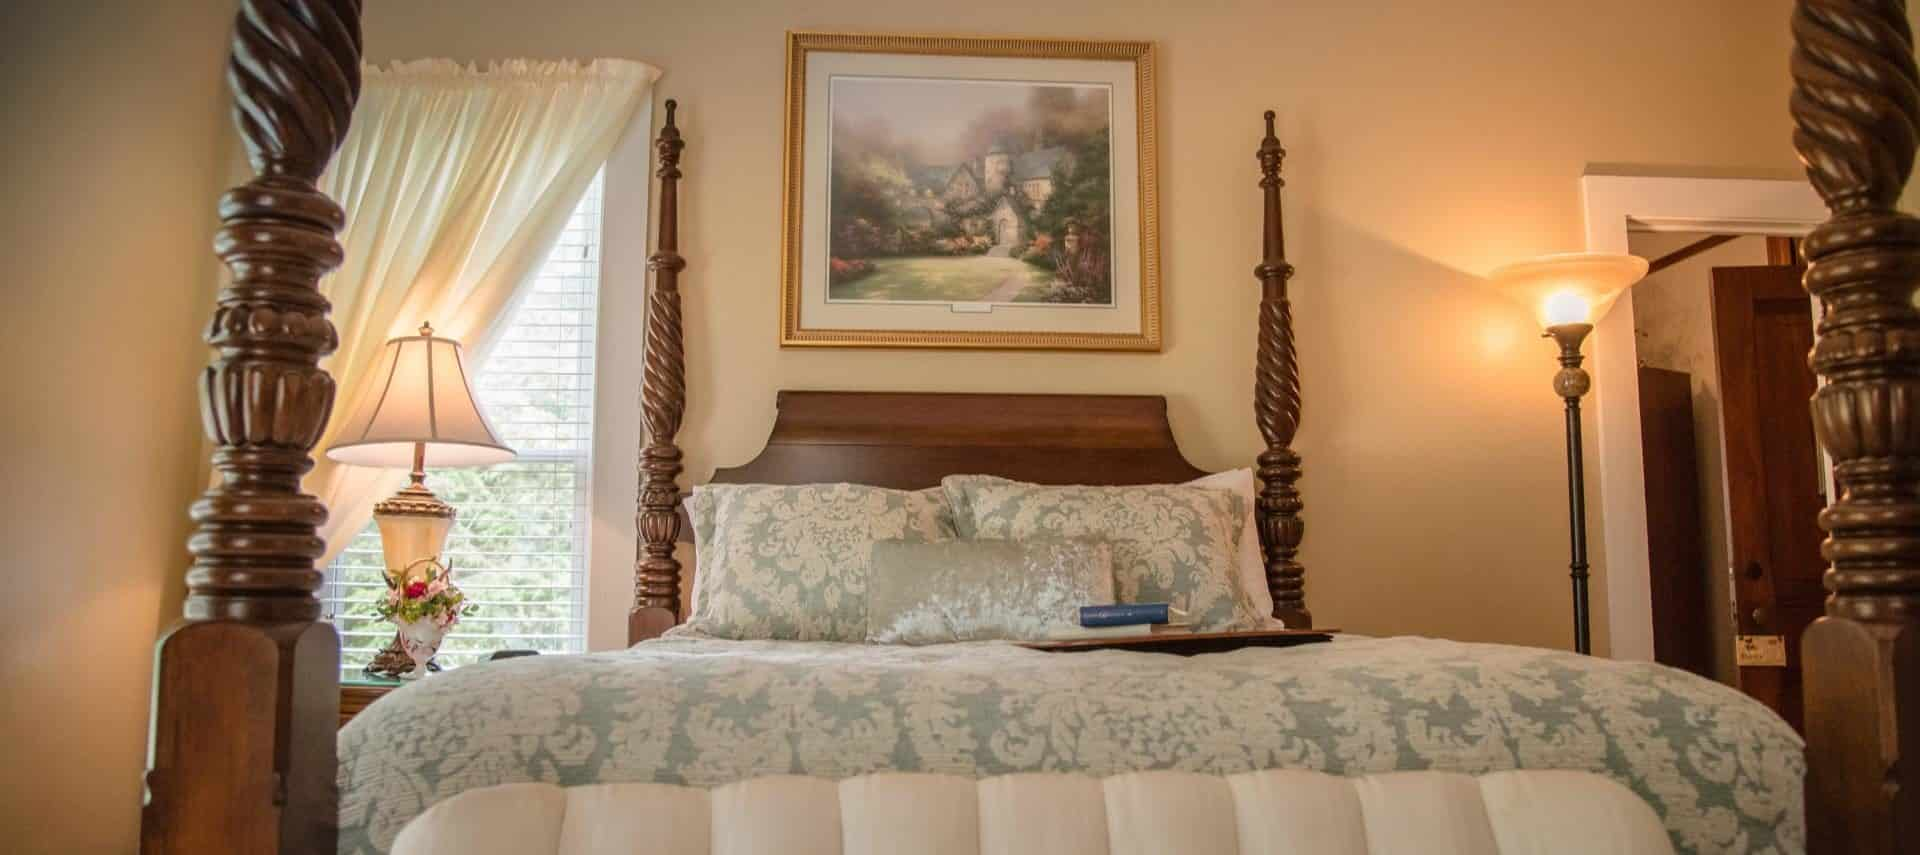 Bedroom with cream walls, dark wooden four-post bed, and white and gray bedding